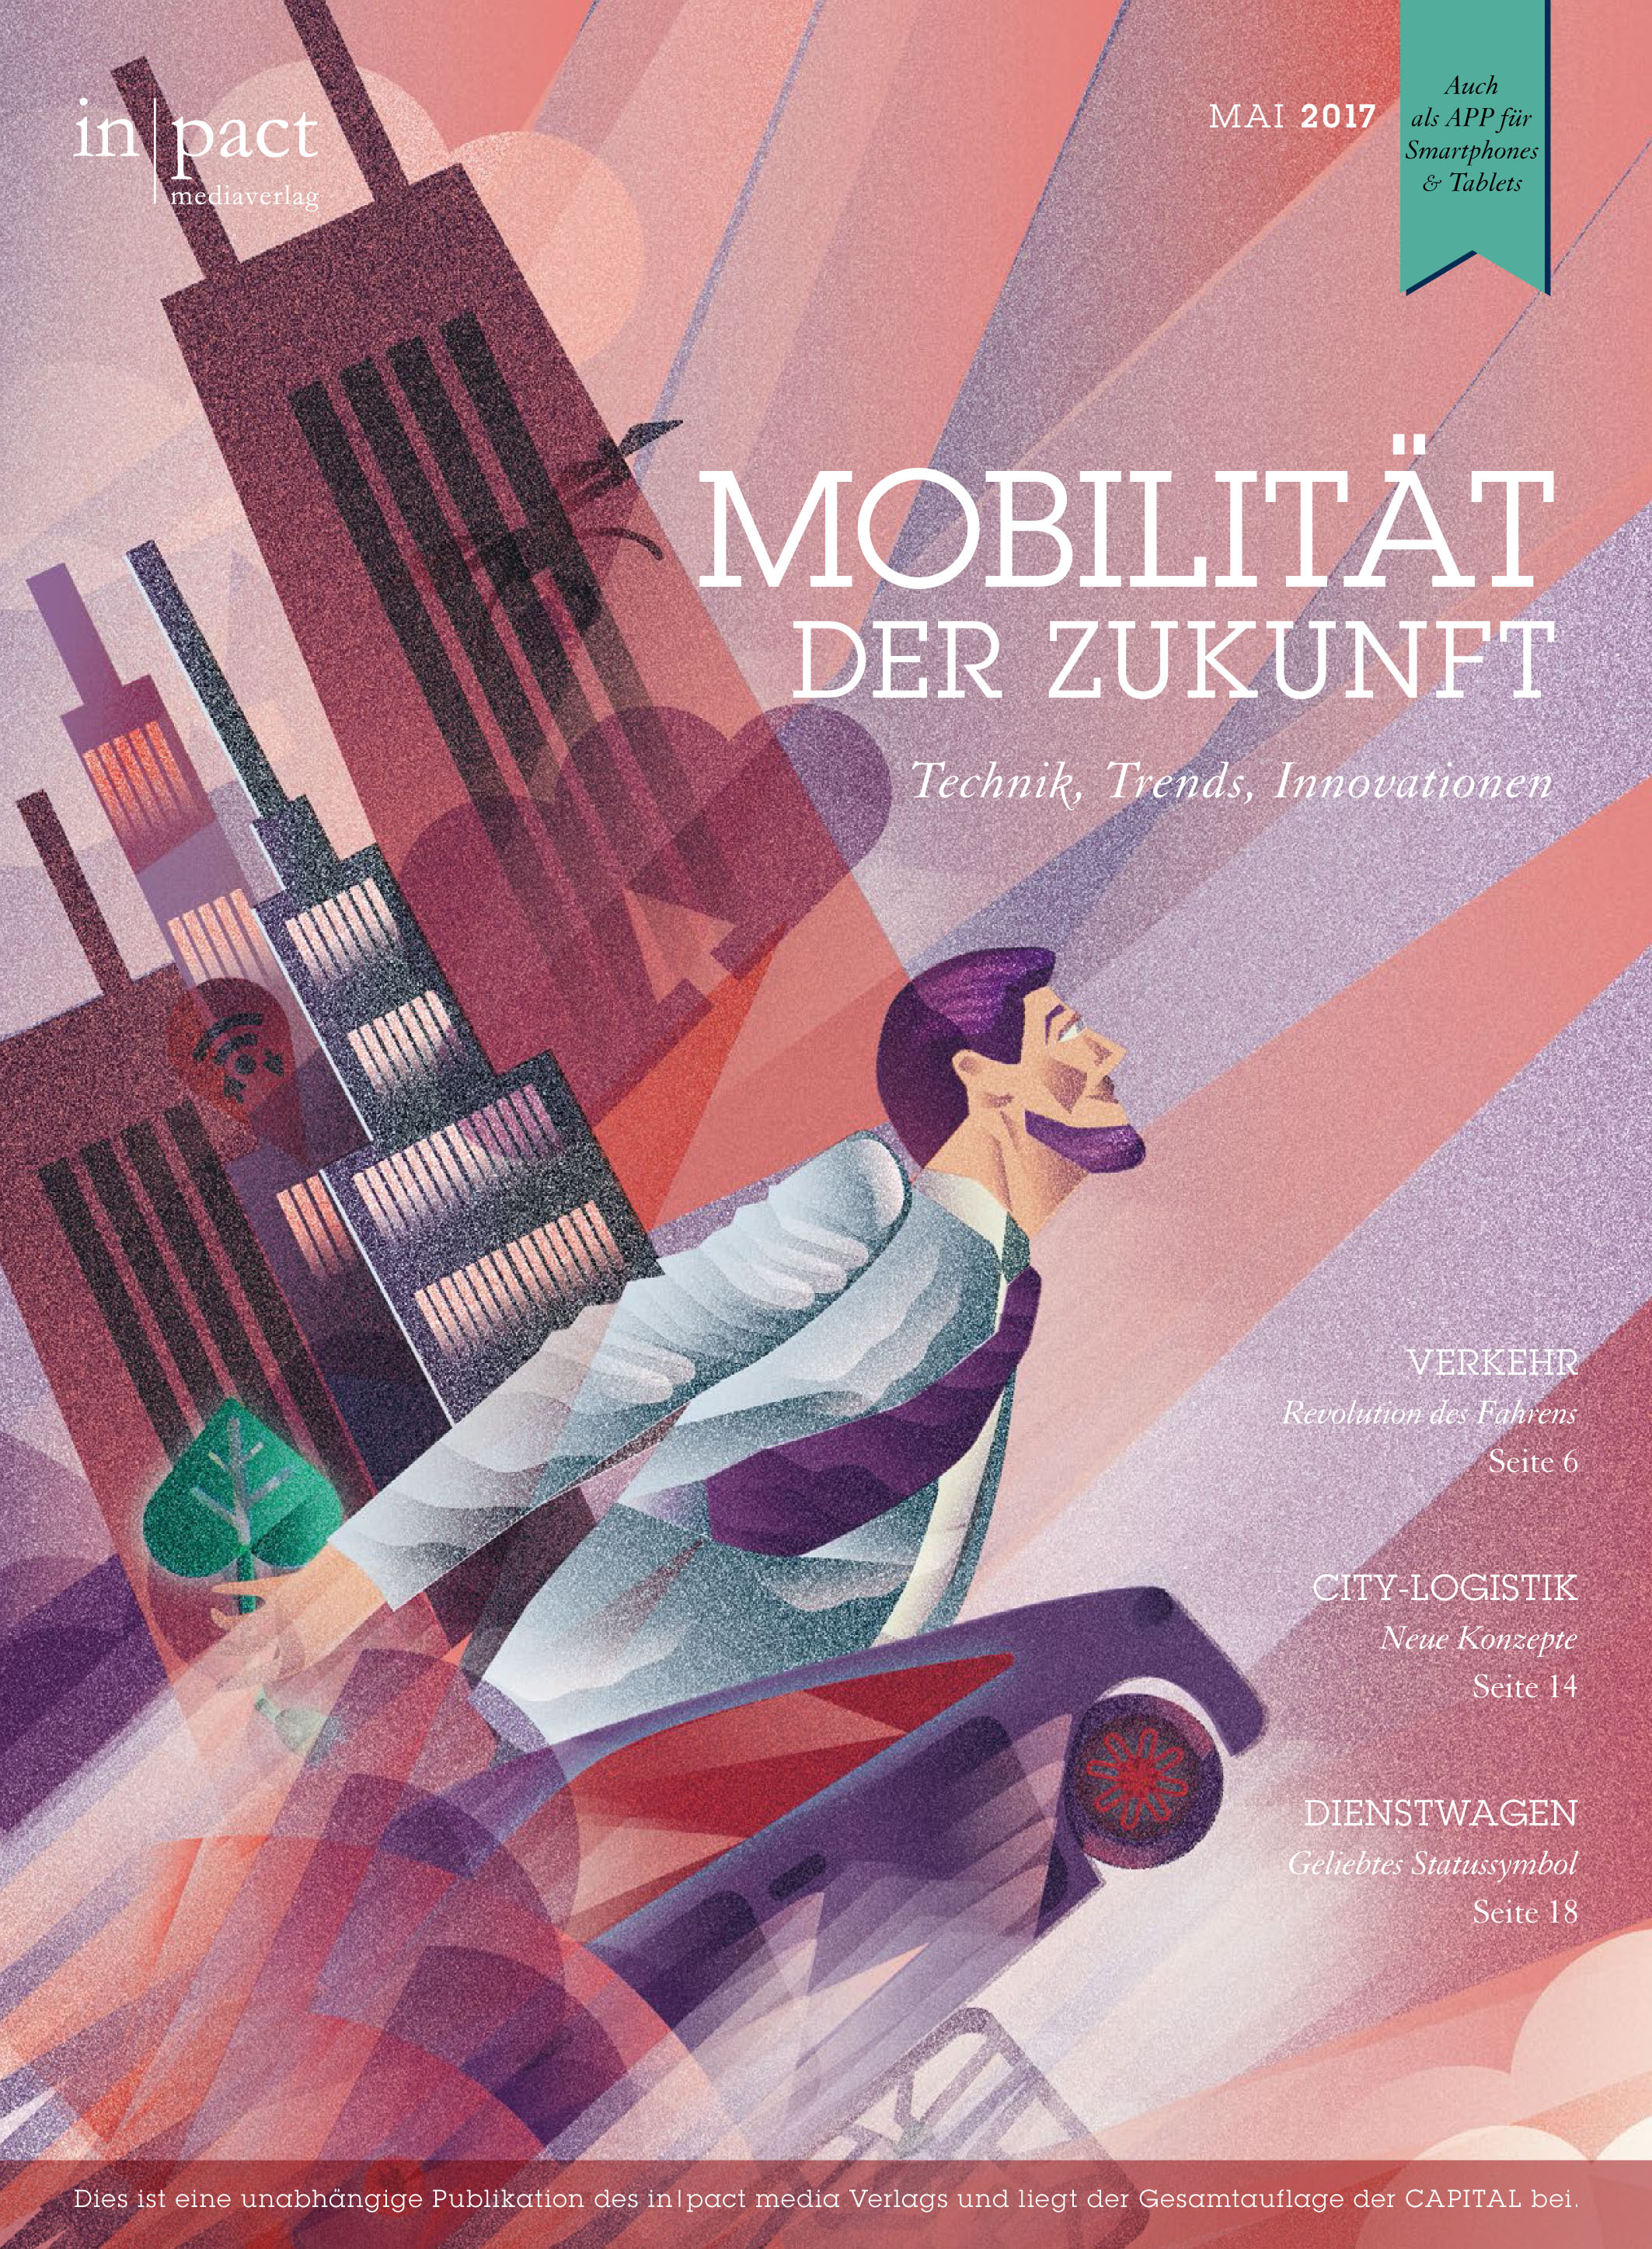 Mobilitaet_CAPITAL_Mai_2017_DS-1